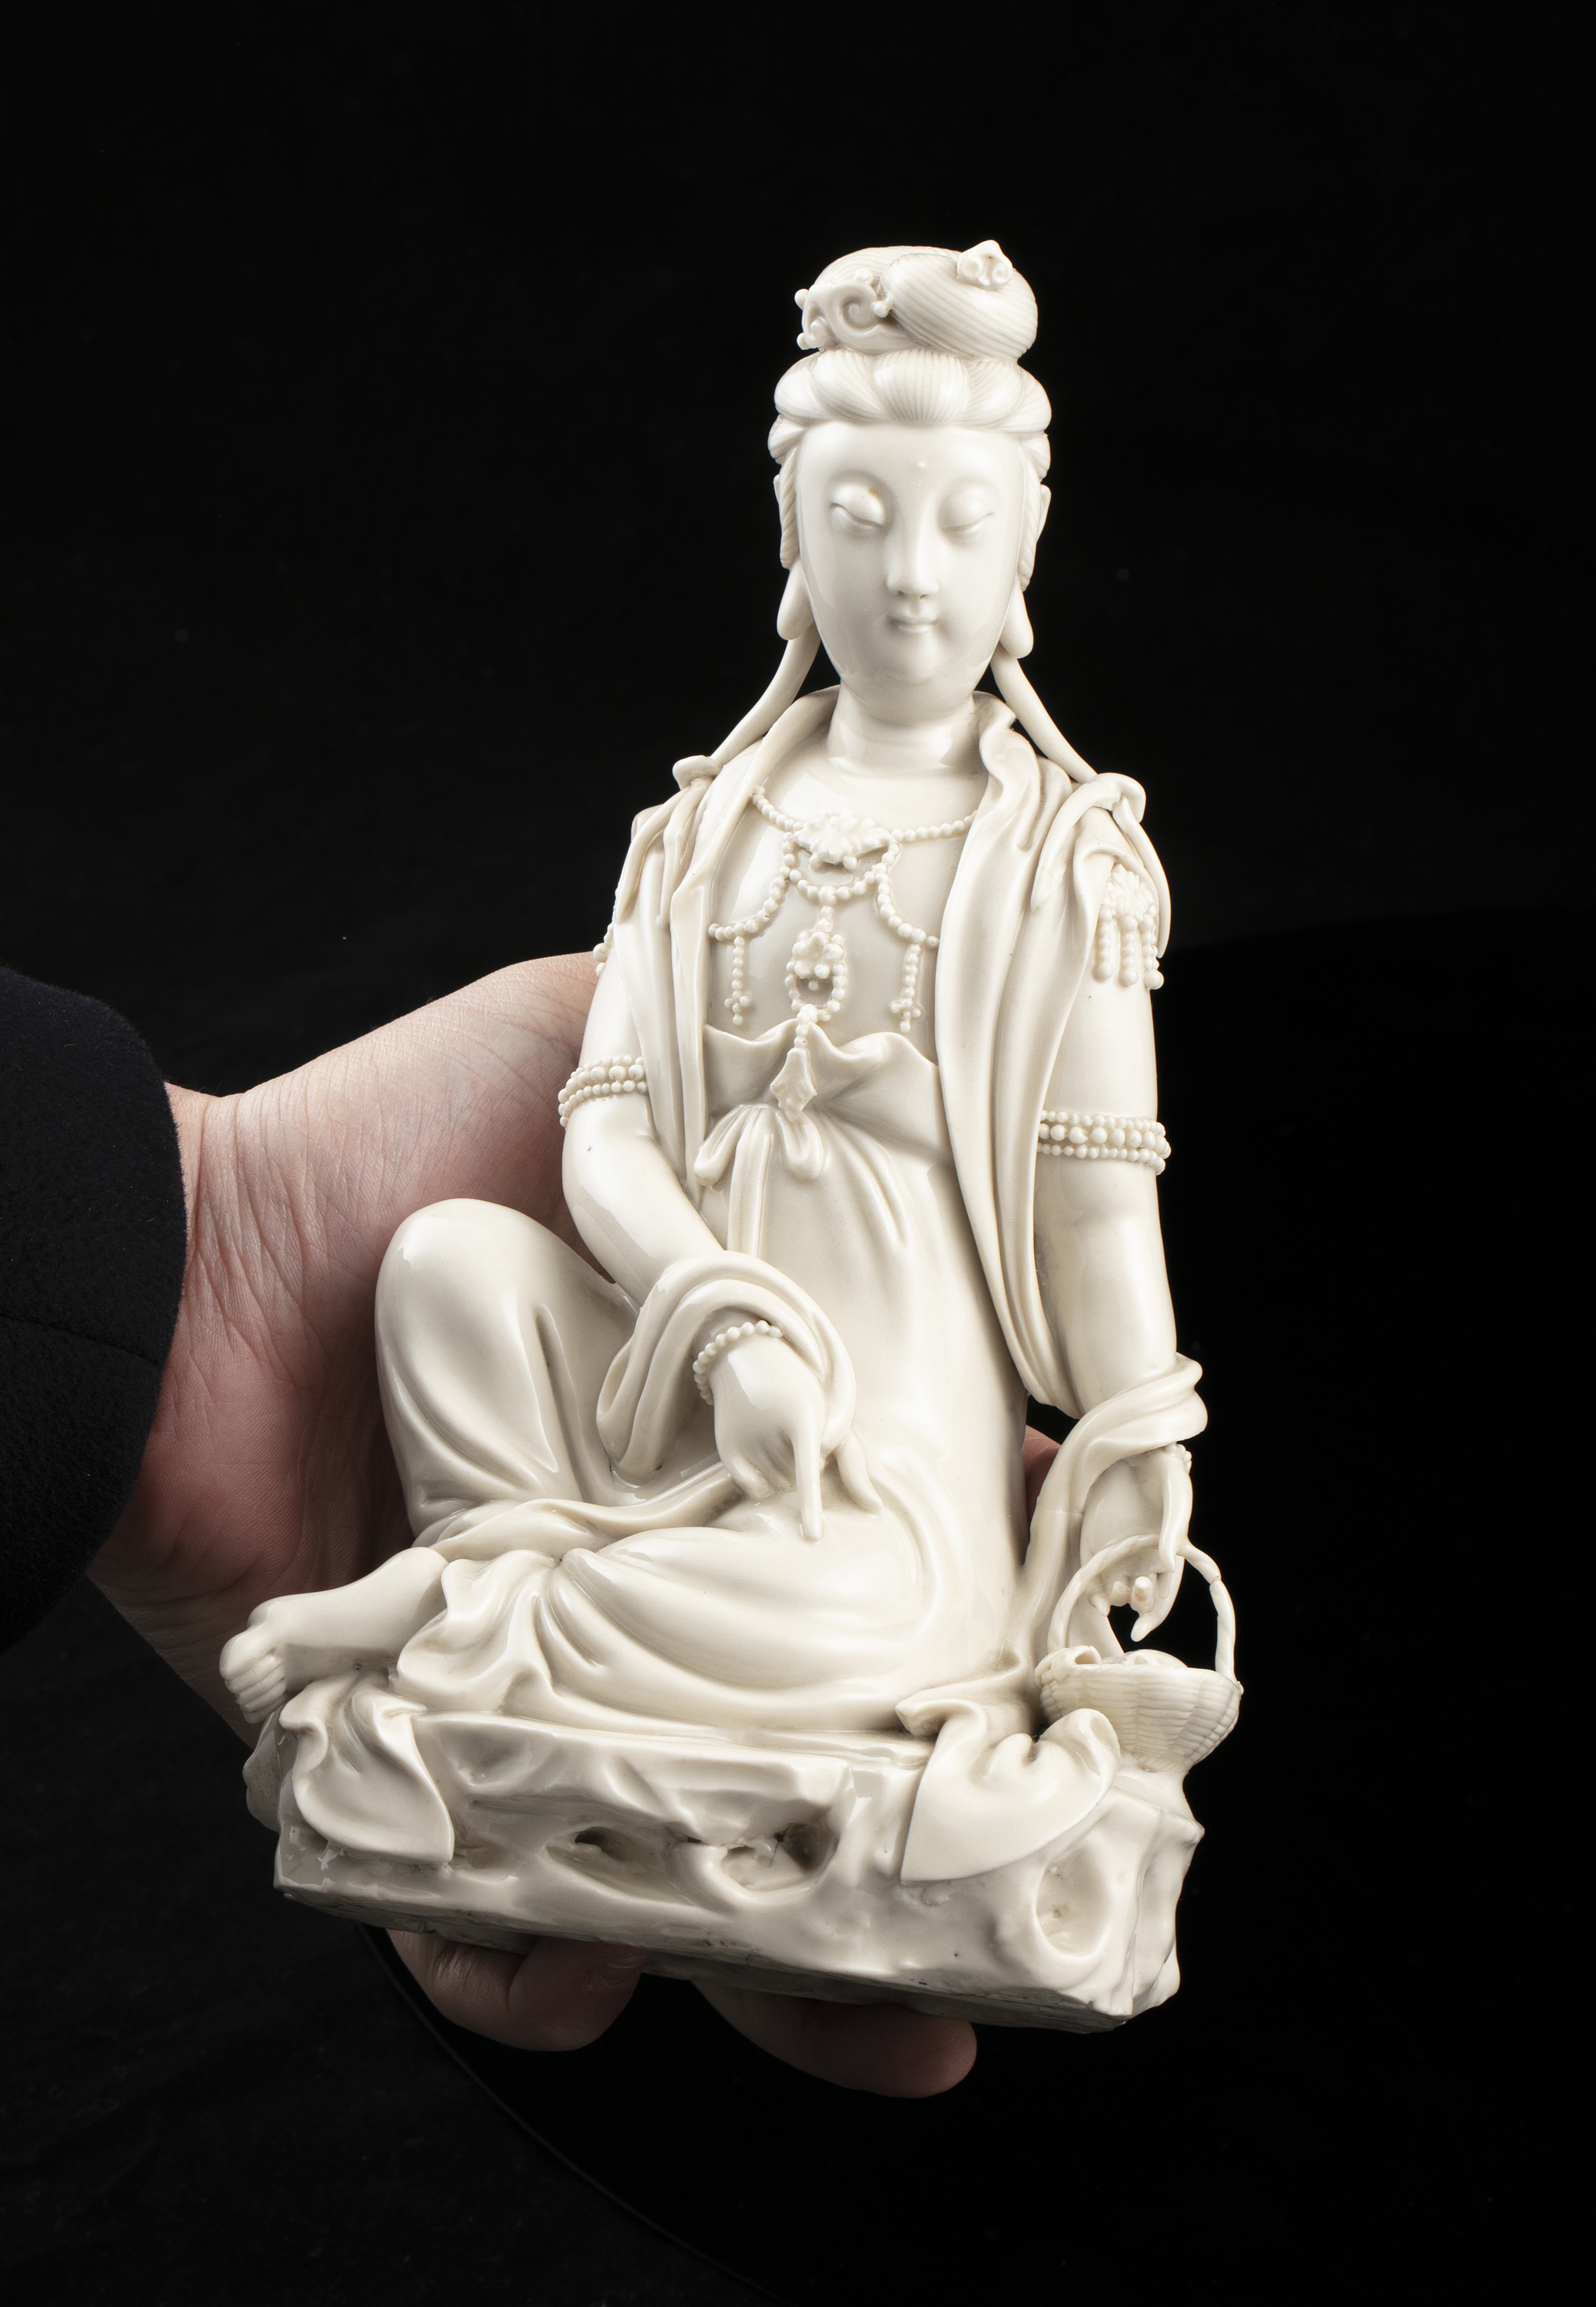 A LARGE DEHUA FIGURE OF A SEATED GUANYIN IMPRESSED WITH A HE CHAOZONG 何朝宗 CALABASH SHAPED SEAL - Image 11 of 48